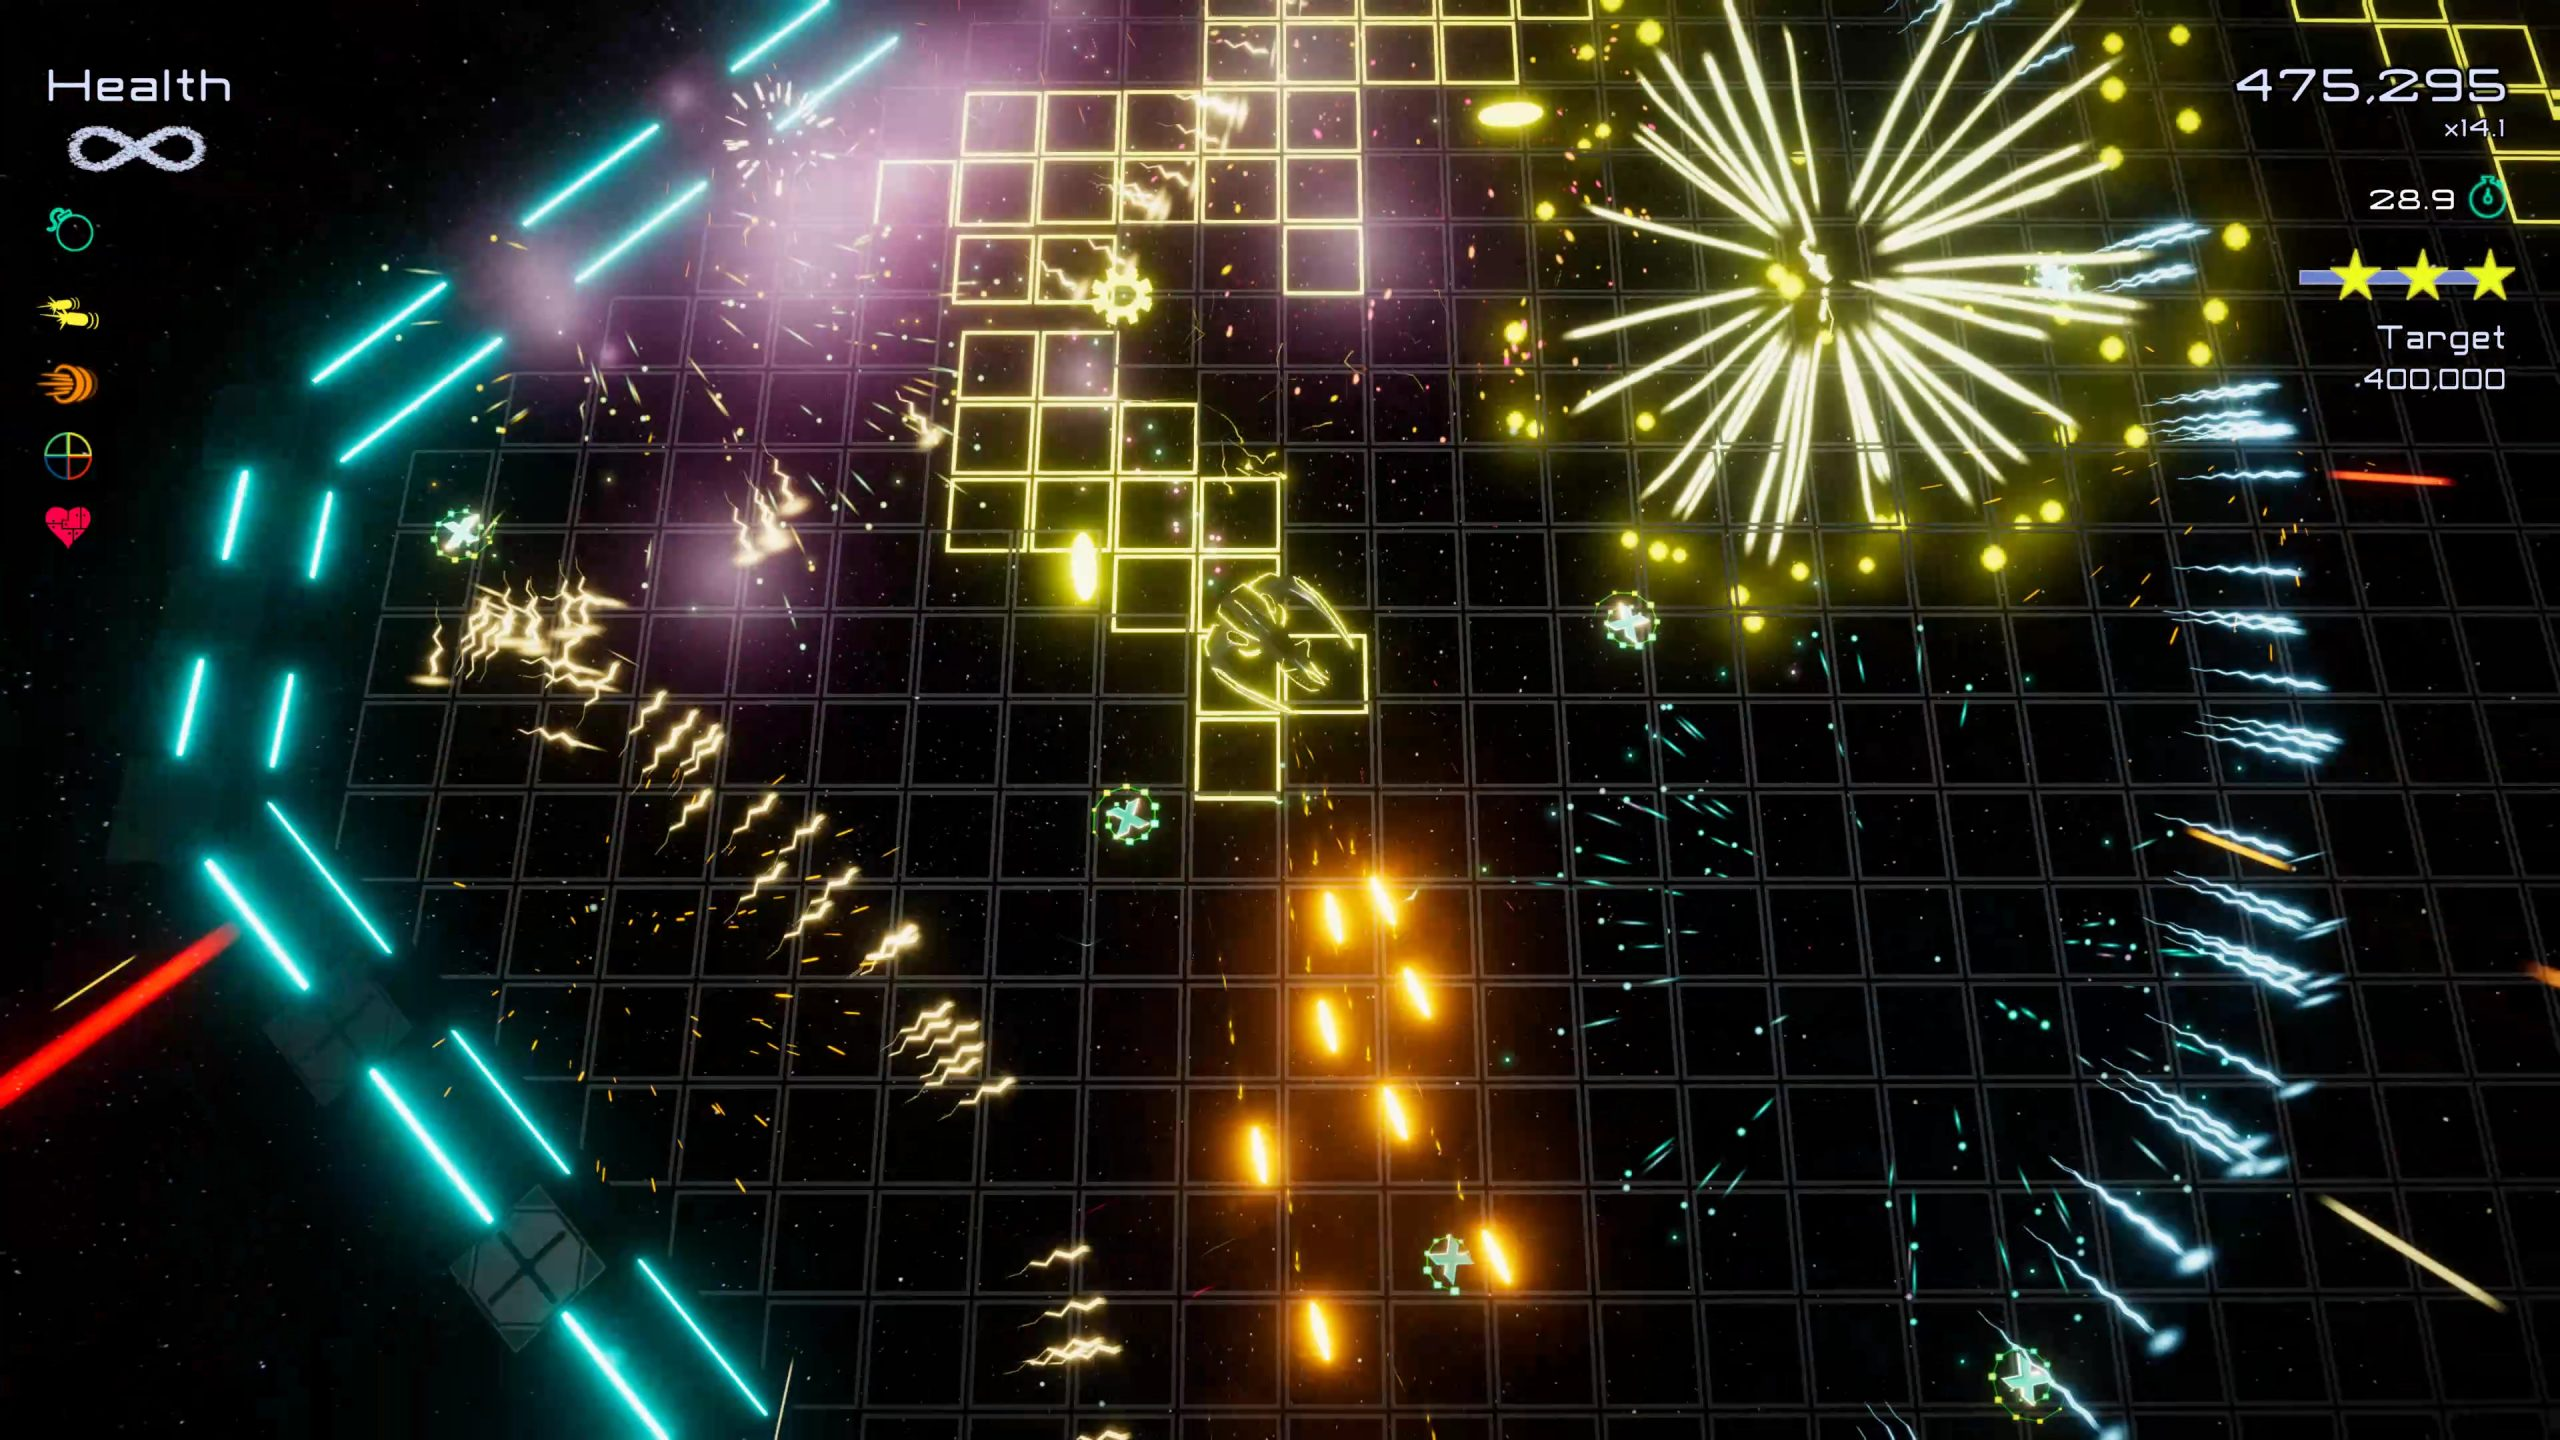 It's Funtime again, very yellow this time as the player paints a grid yellow, yellow explosions are going off and there's orange bullets which is nearly yellow if anyone asks.